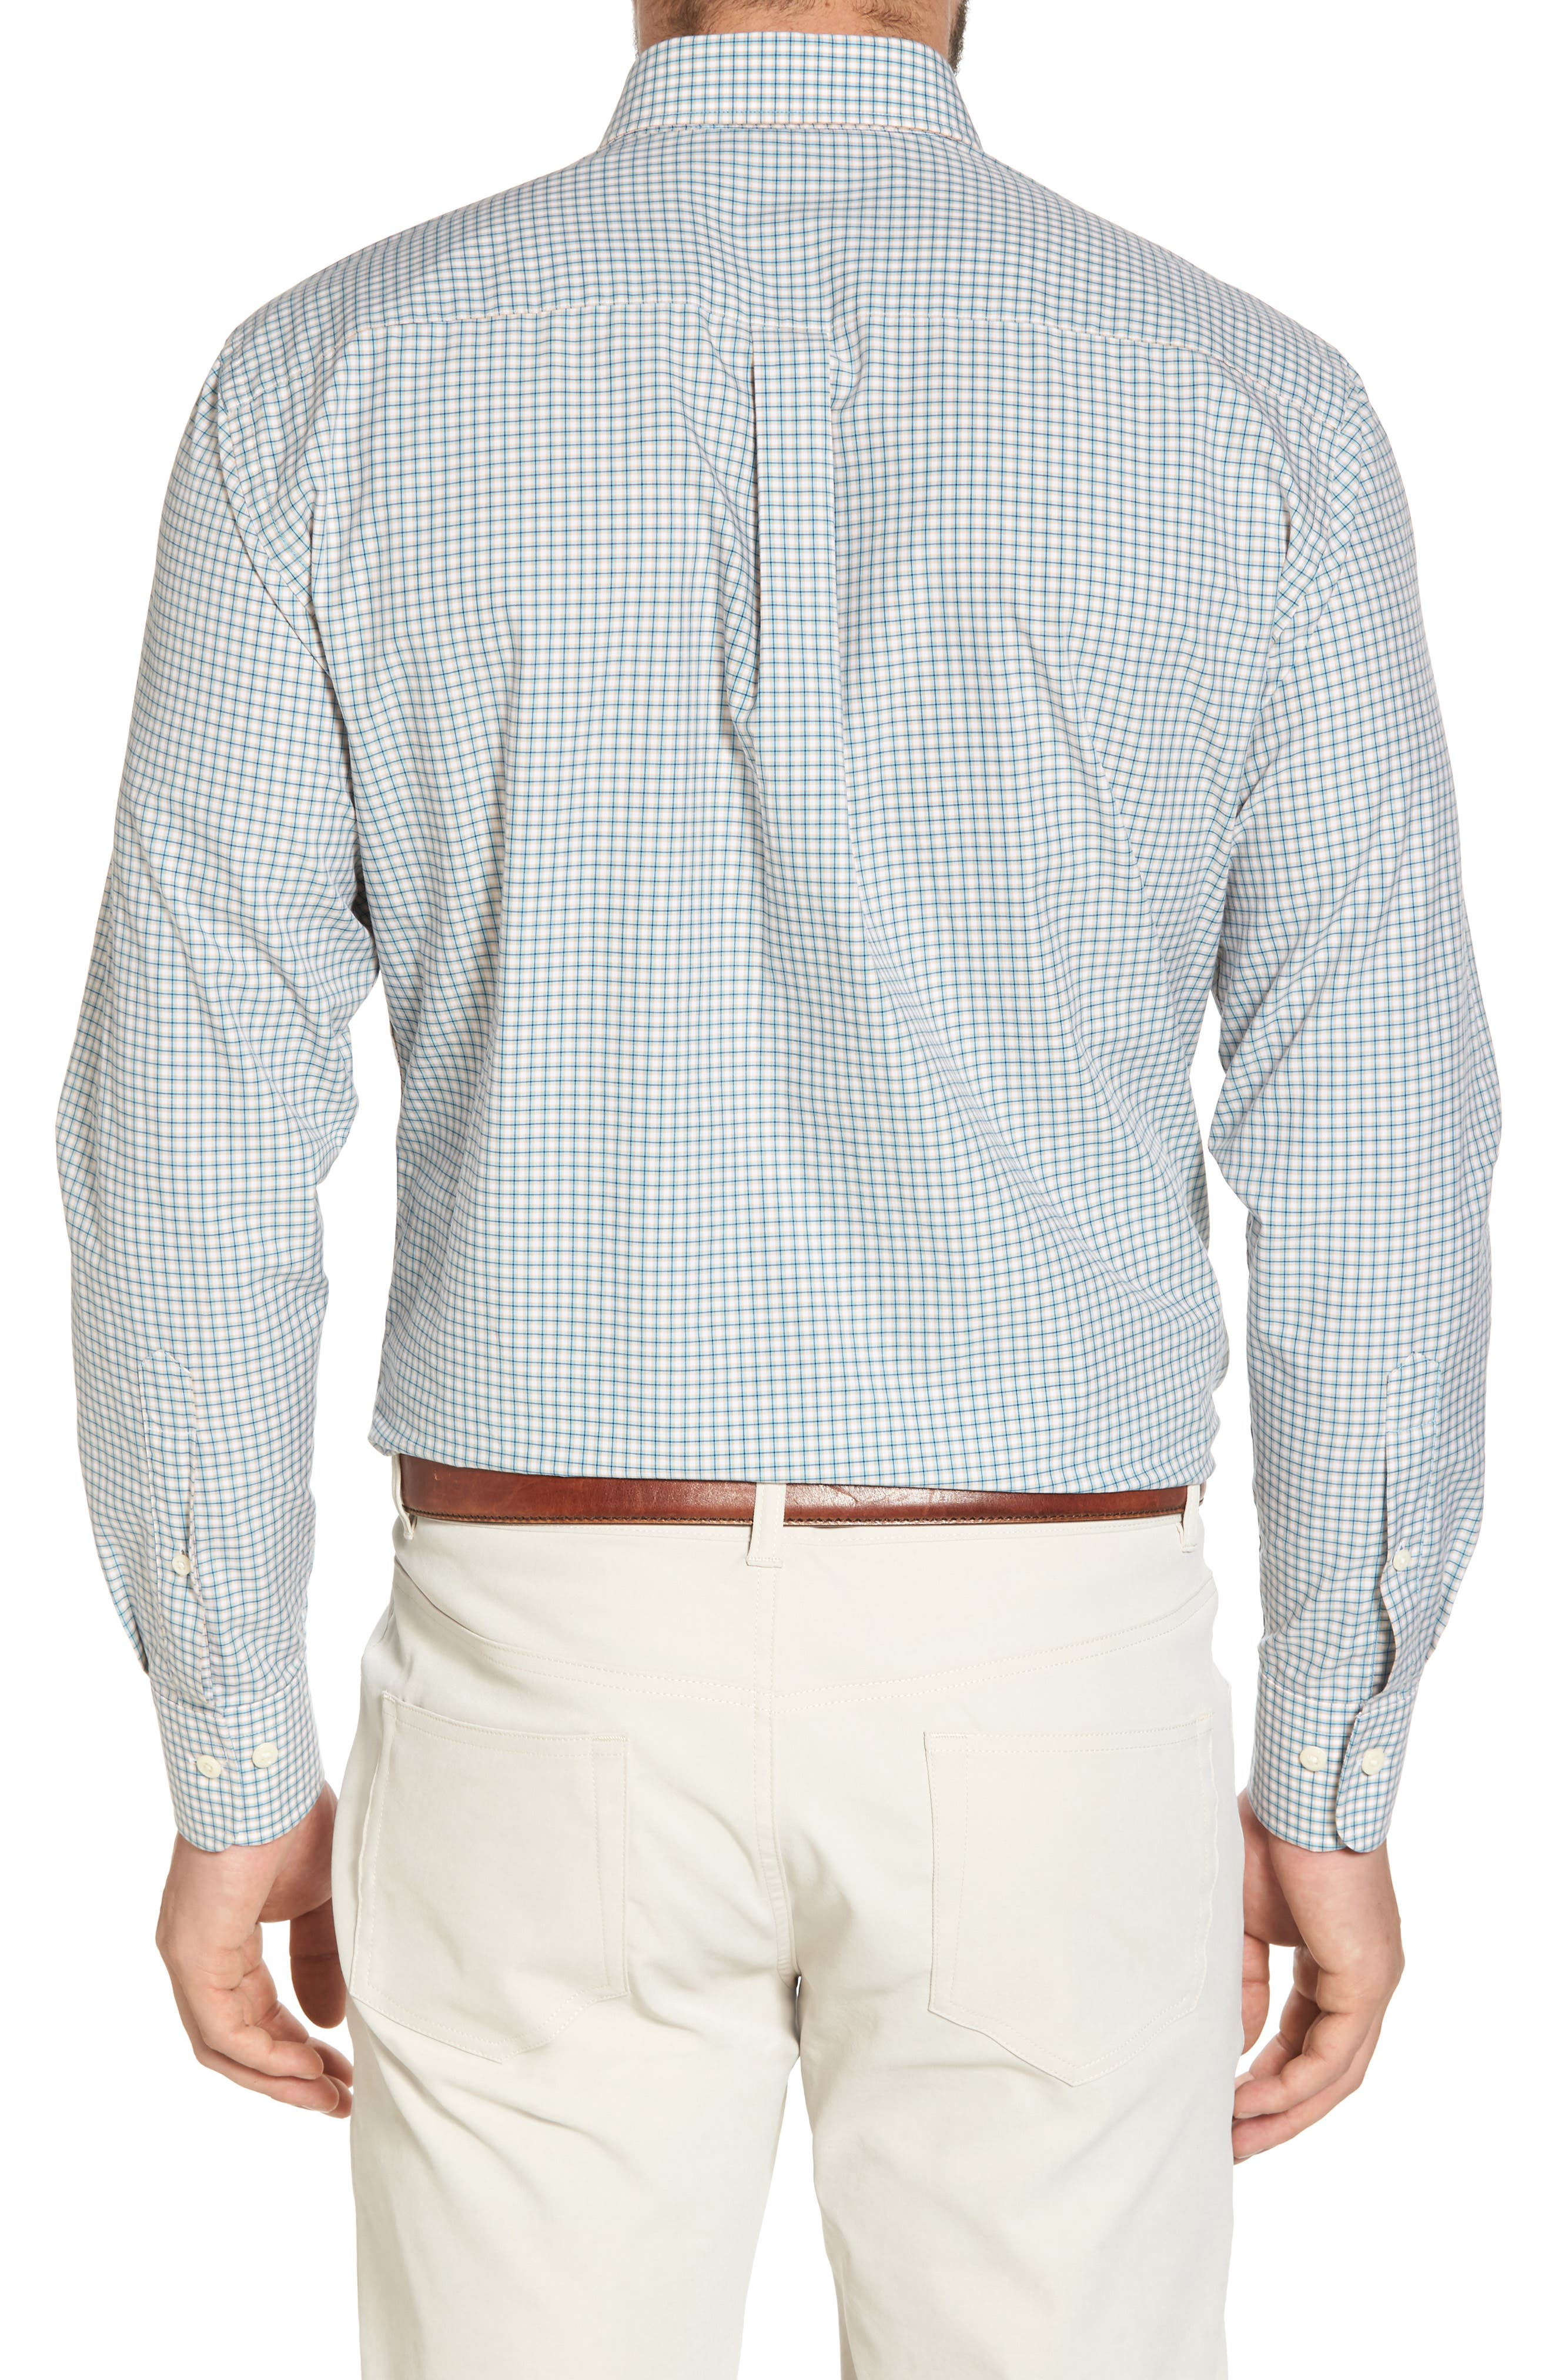 Classic Fit Alligator Check Sport Shirt,                             Alternate thumbnail 2, color,                             Dreamsicle